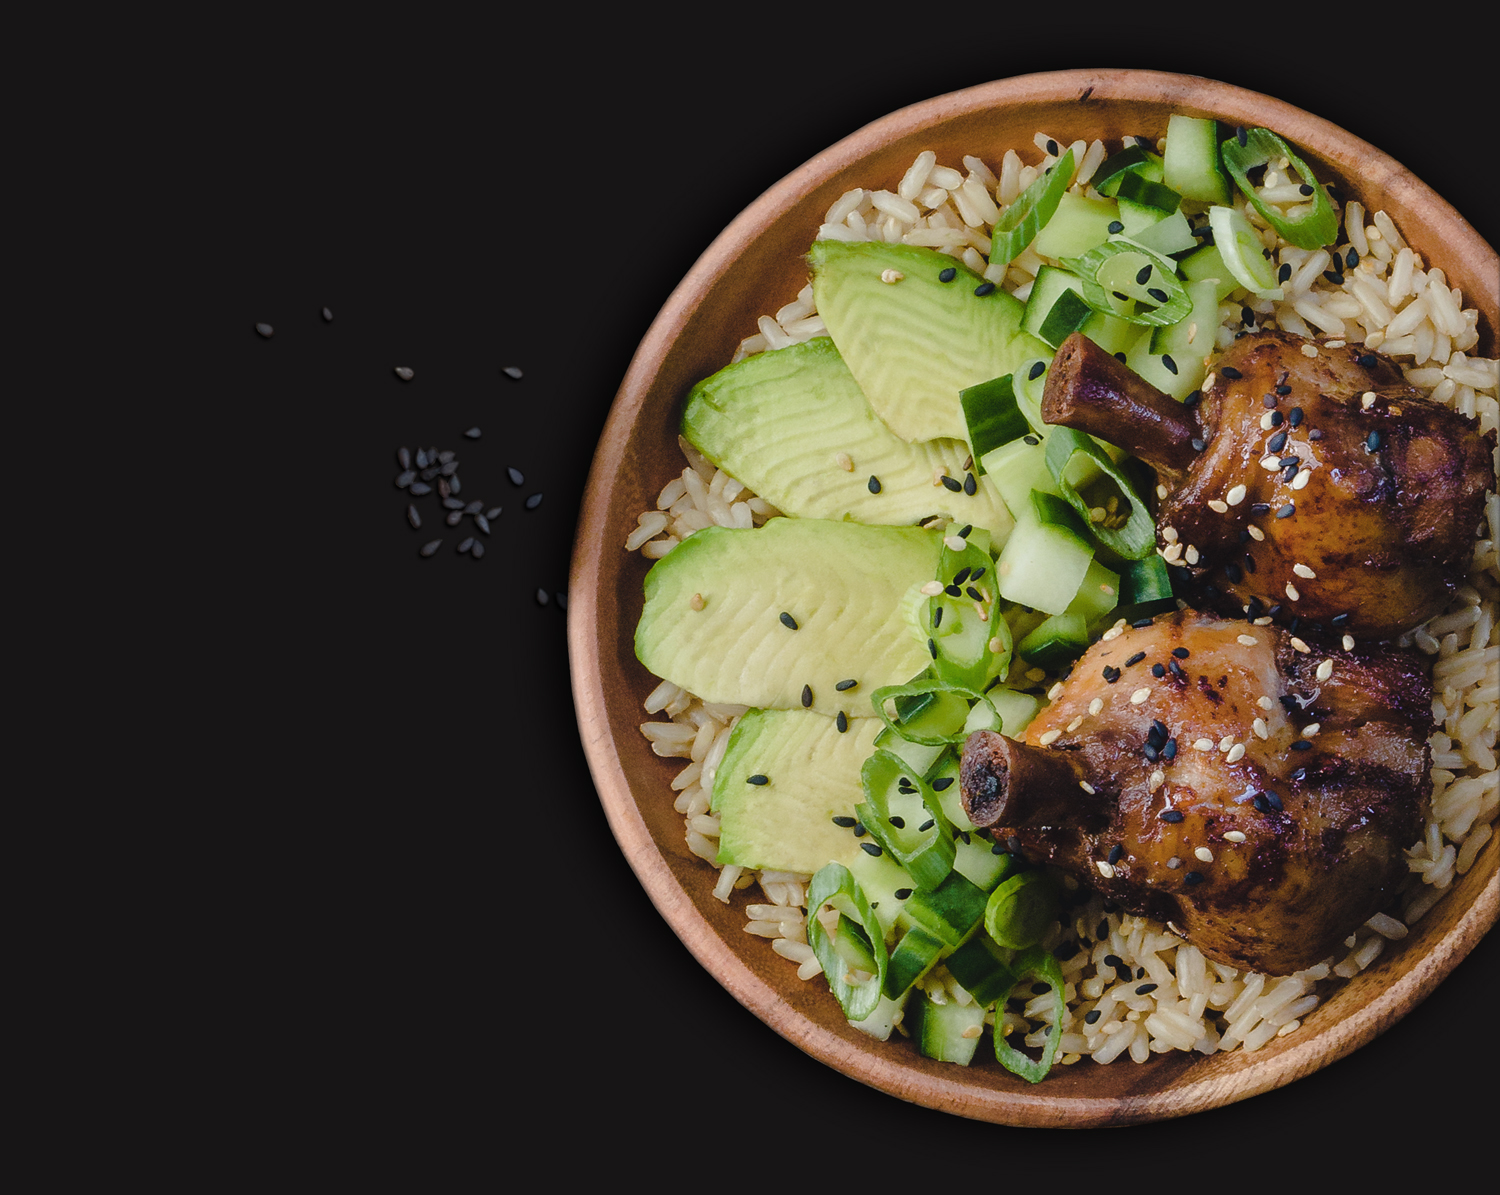 EZ WINGS Teriyaki Drum Lollie, Cucumber, and Avocado Bowl